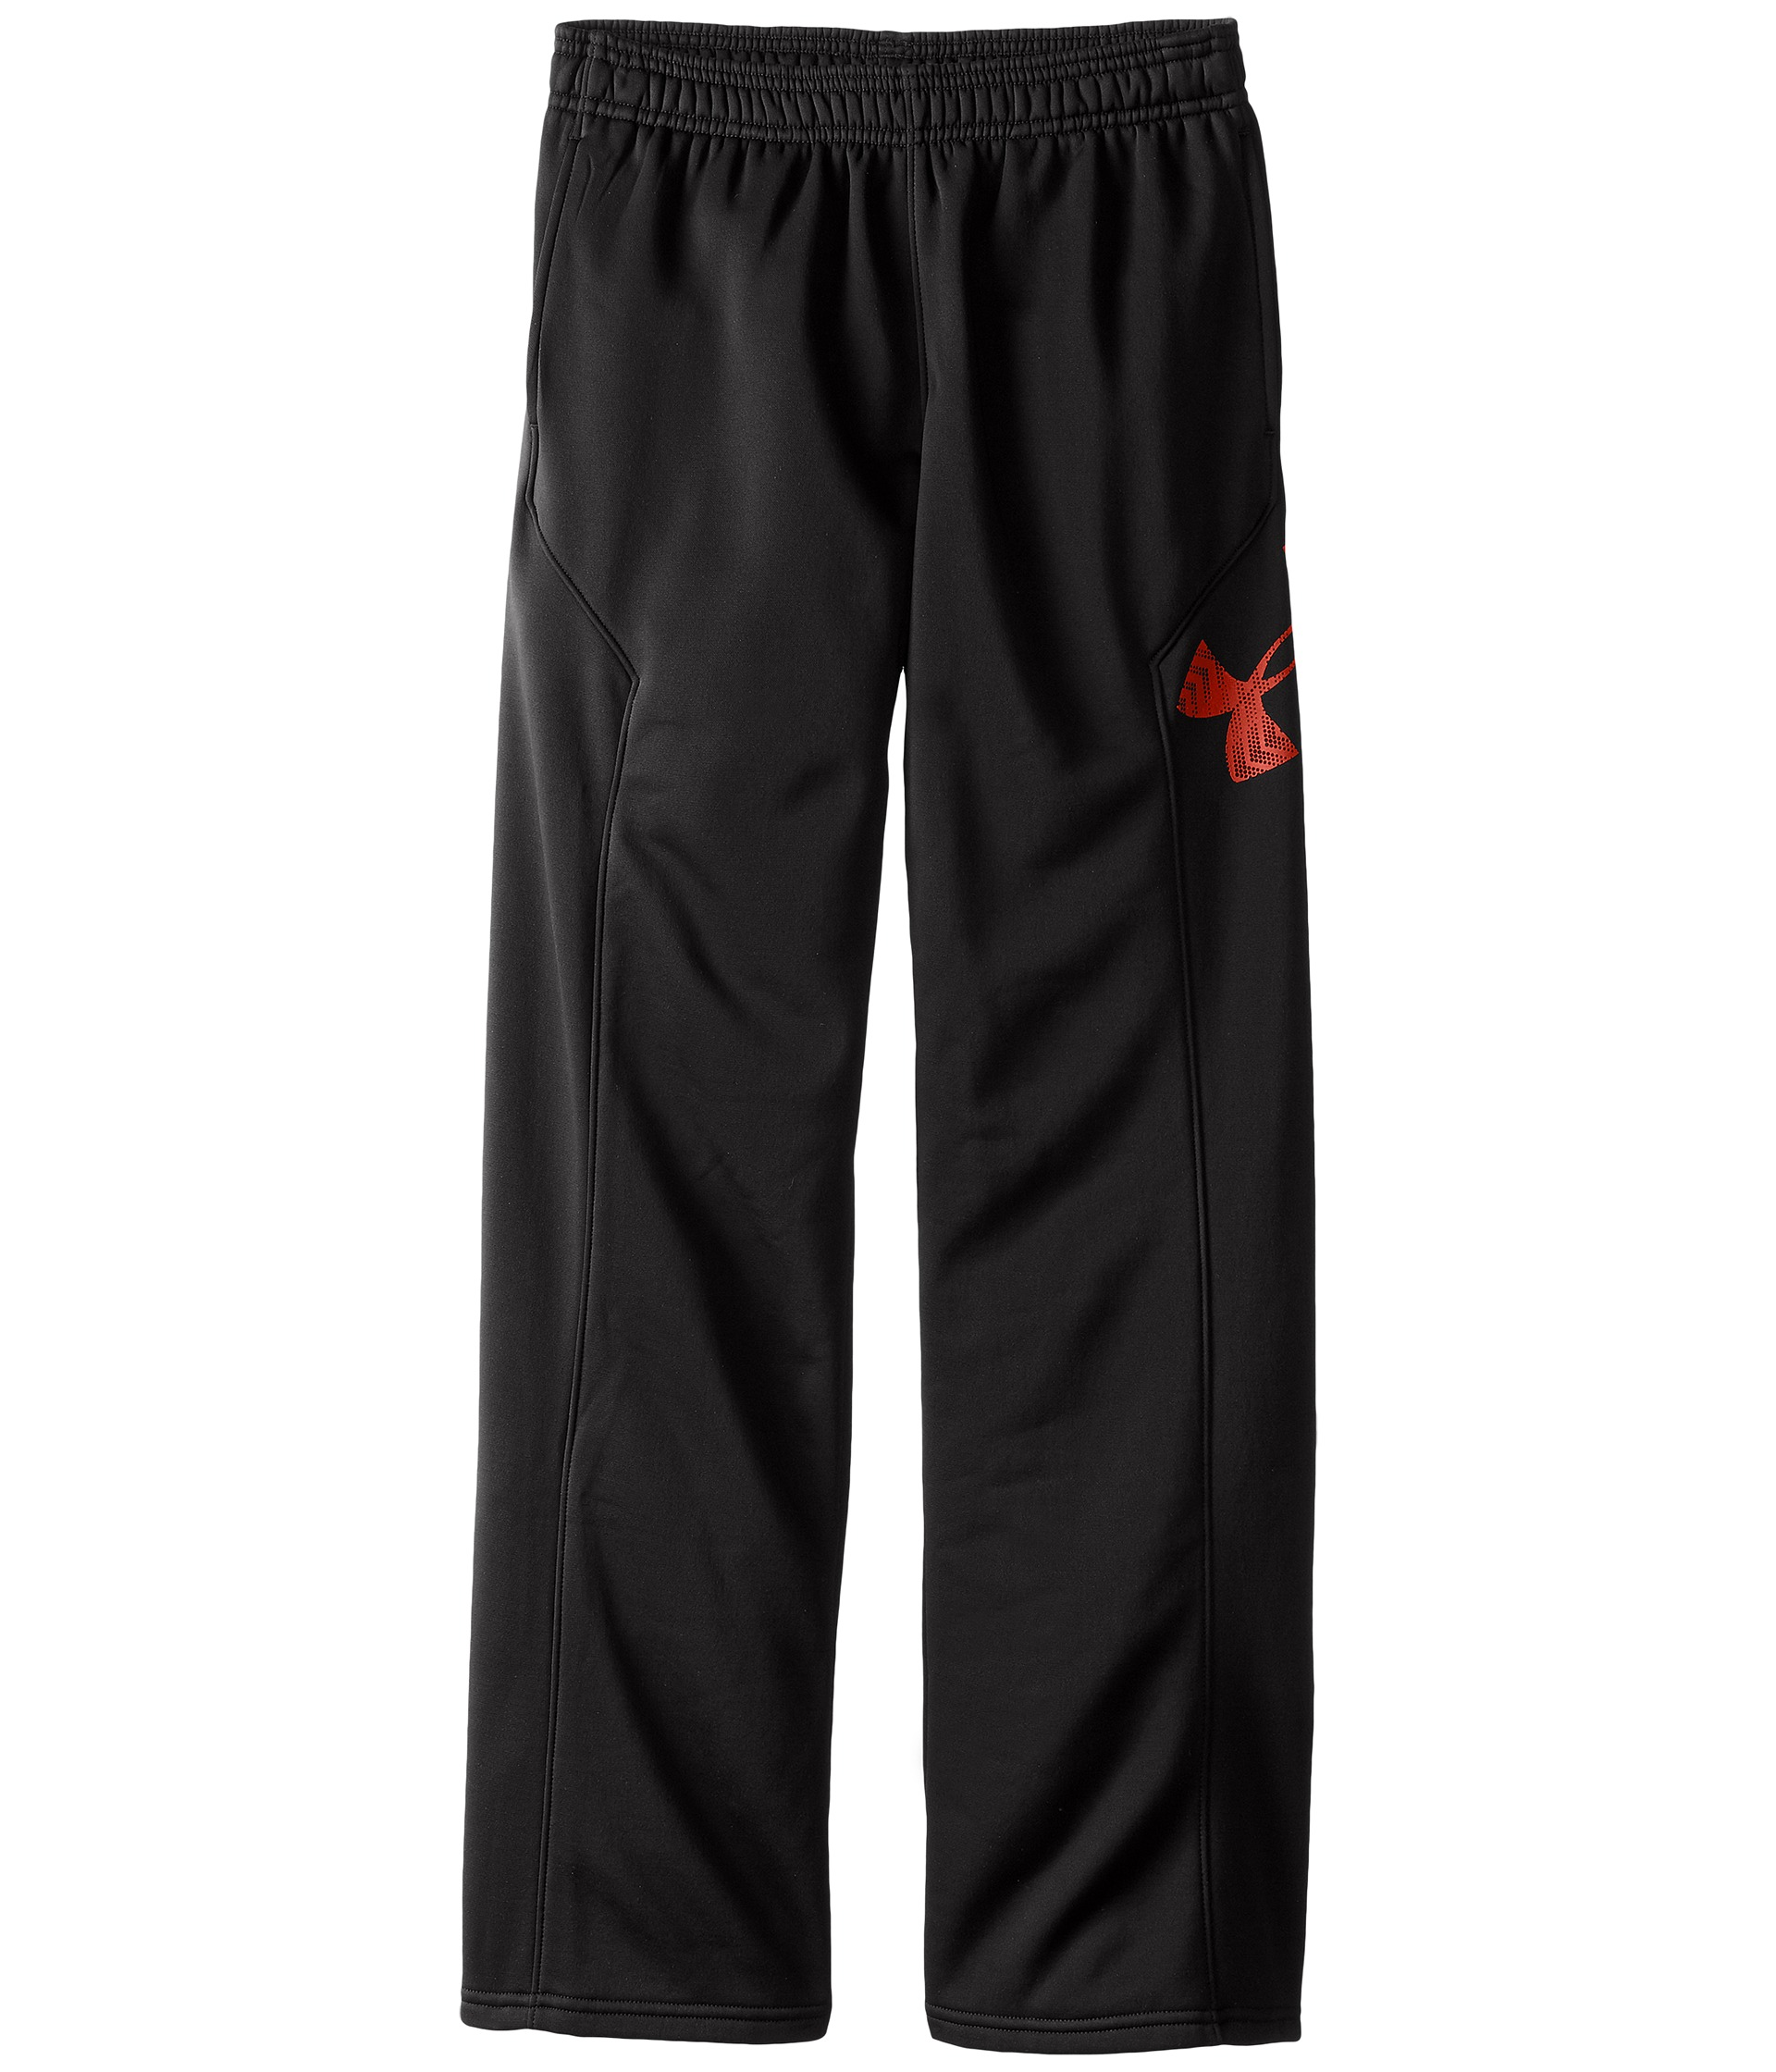 Equipped to withstand even your longest run, these pants are a wardrobe essential. A large adidas logo is located across the thigh and the tapered leg design gives you that classically-athletic look you won't mind showing off.